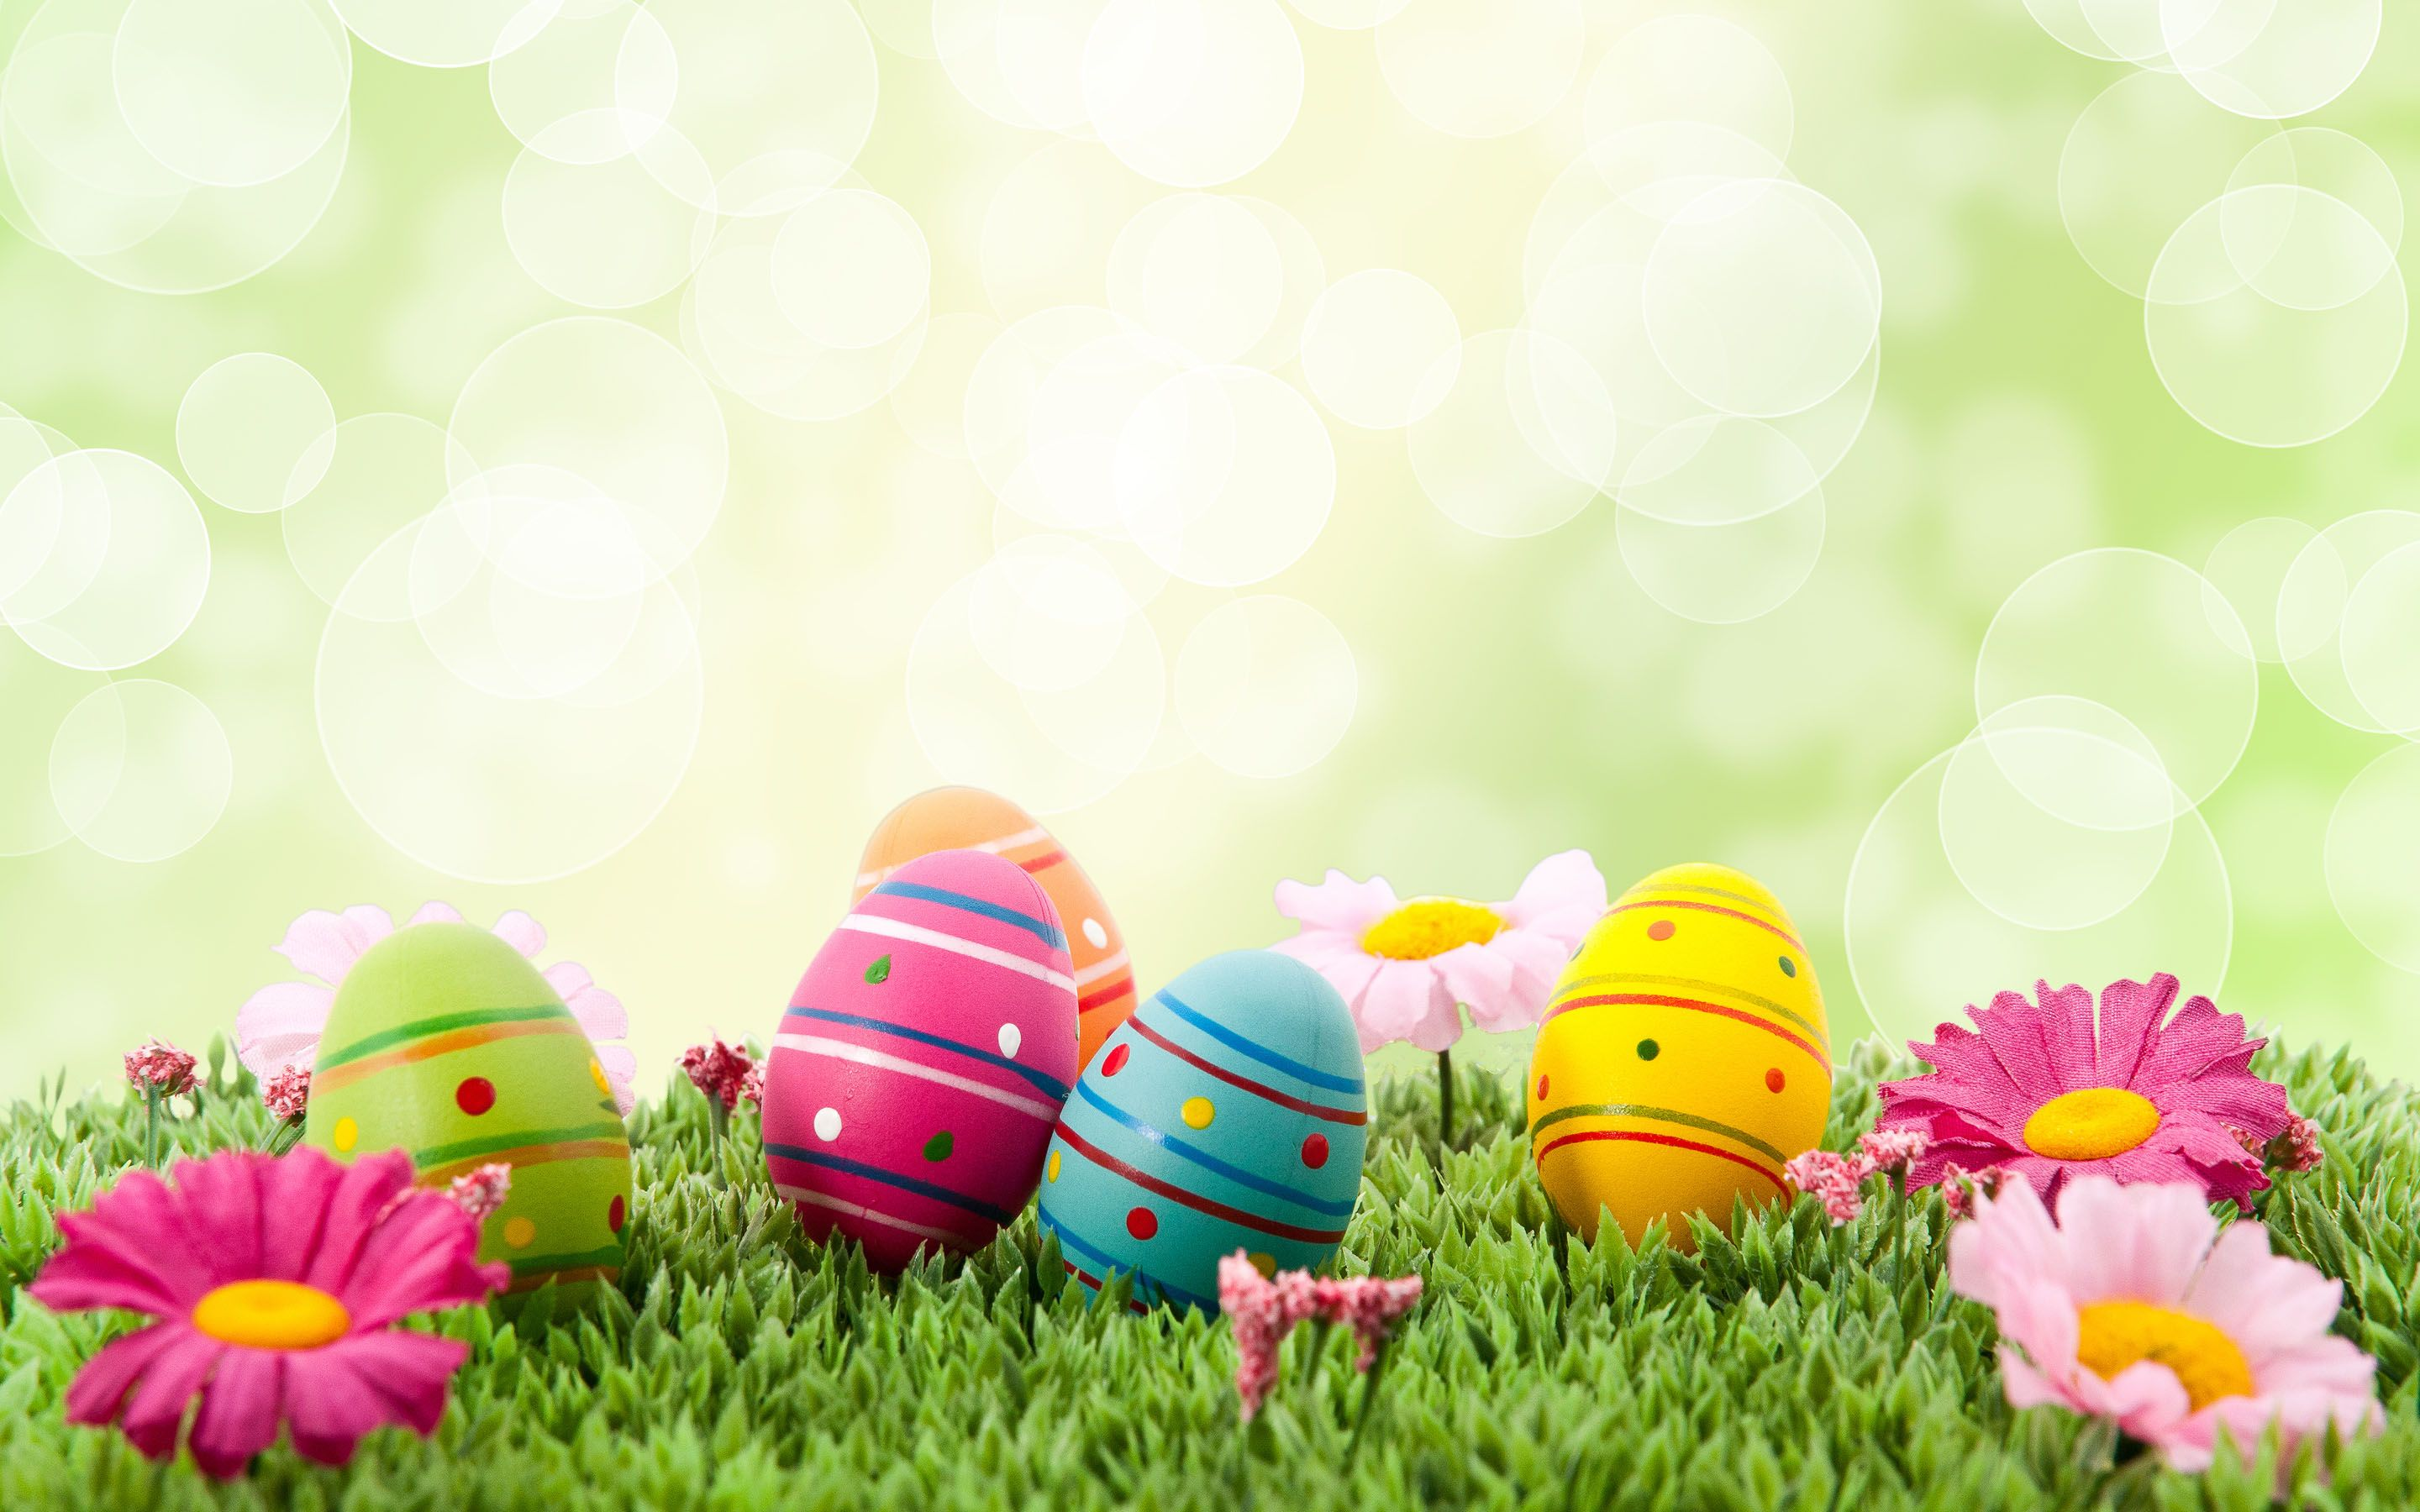 32 BEAUTIFUL EASTER WALLPAPER FREE TO DOWNLOAD Easter wallpaper 2880x1800